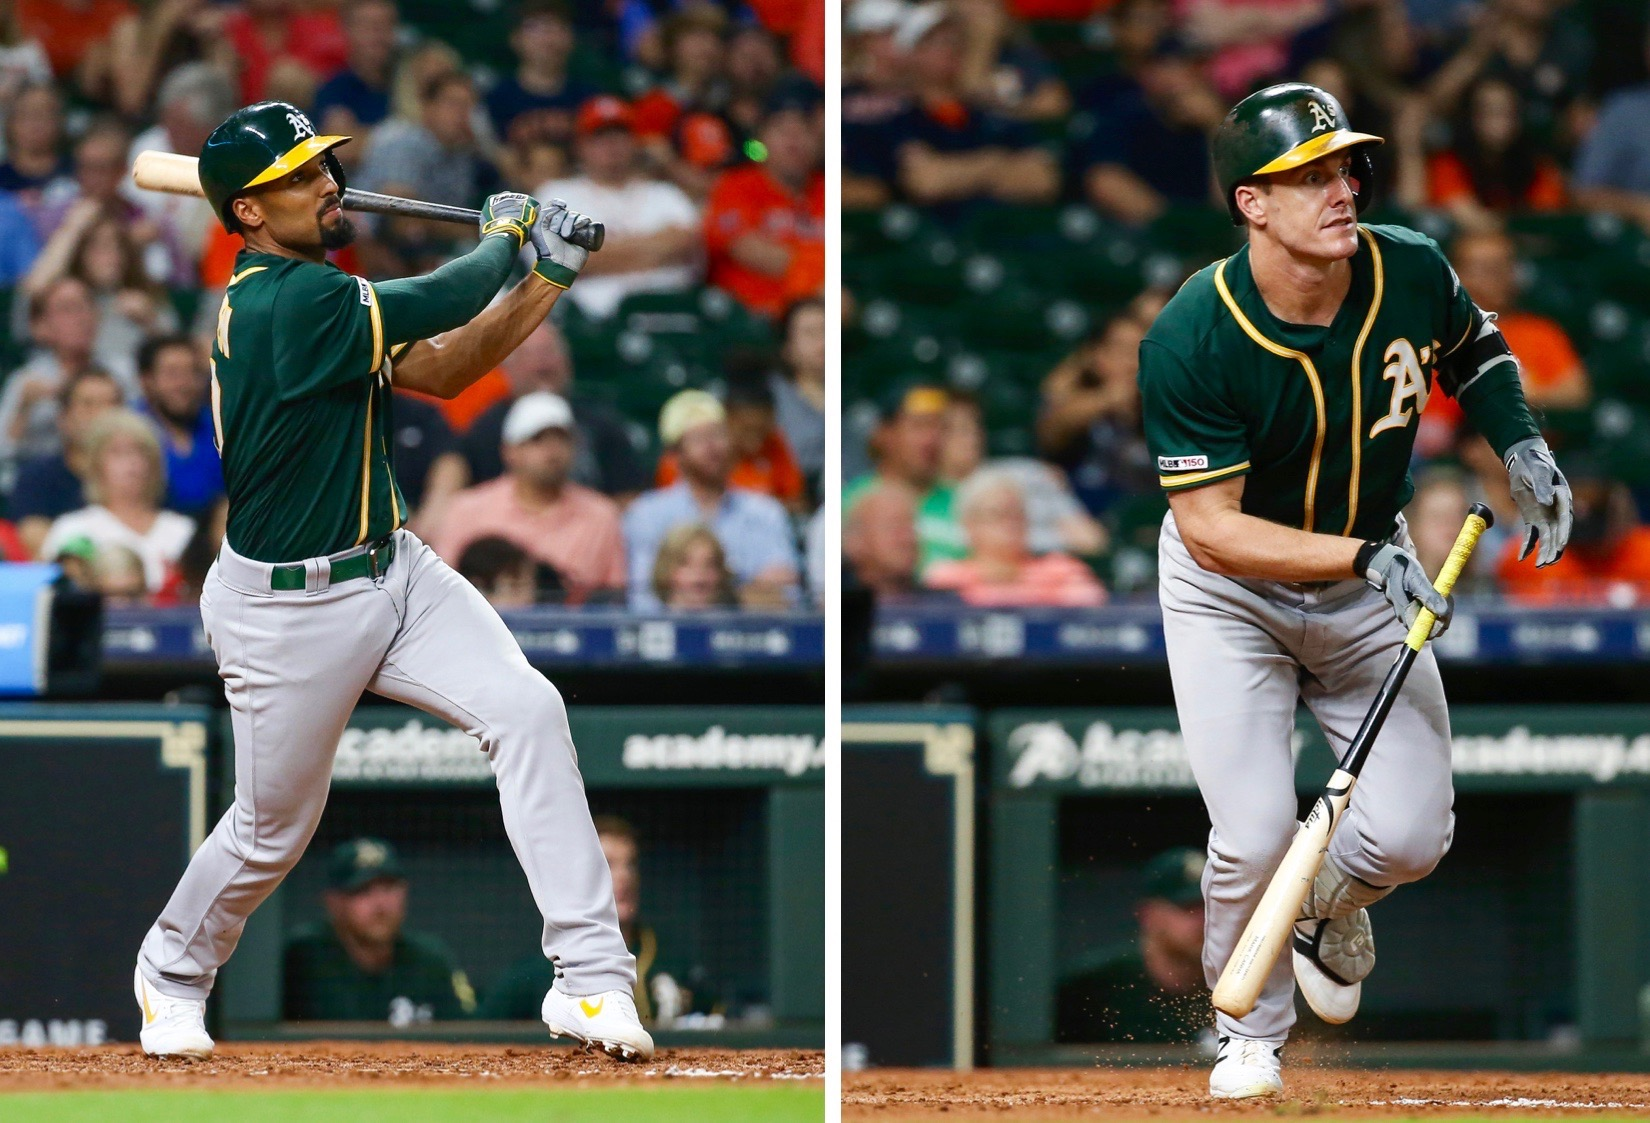 Cal Baseball: Ex-Bears Marcus Semien, Mark Canha Deliver Big For A's